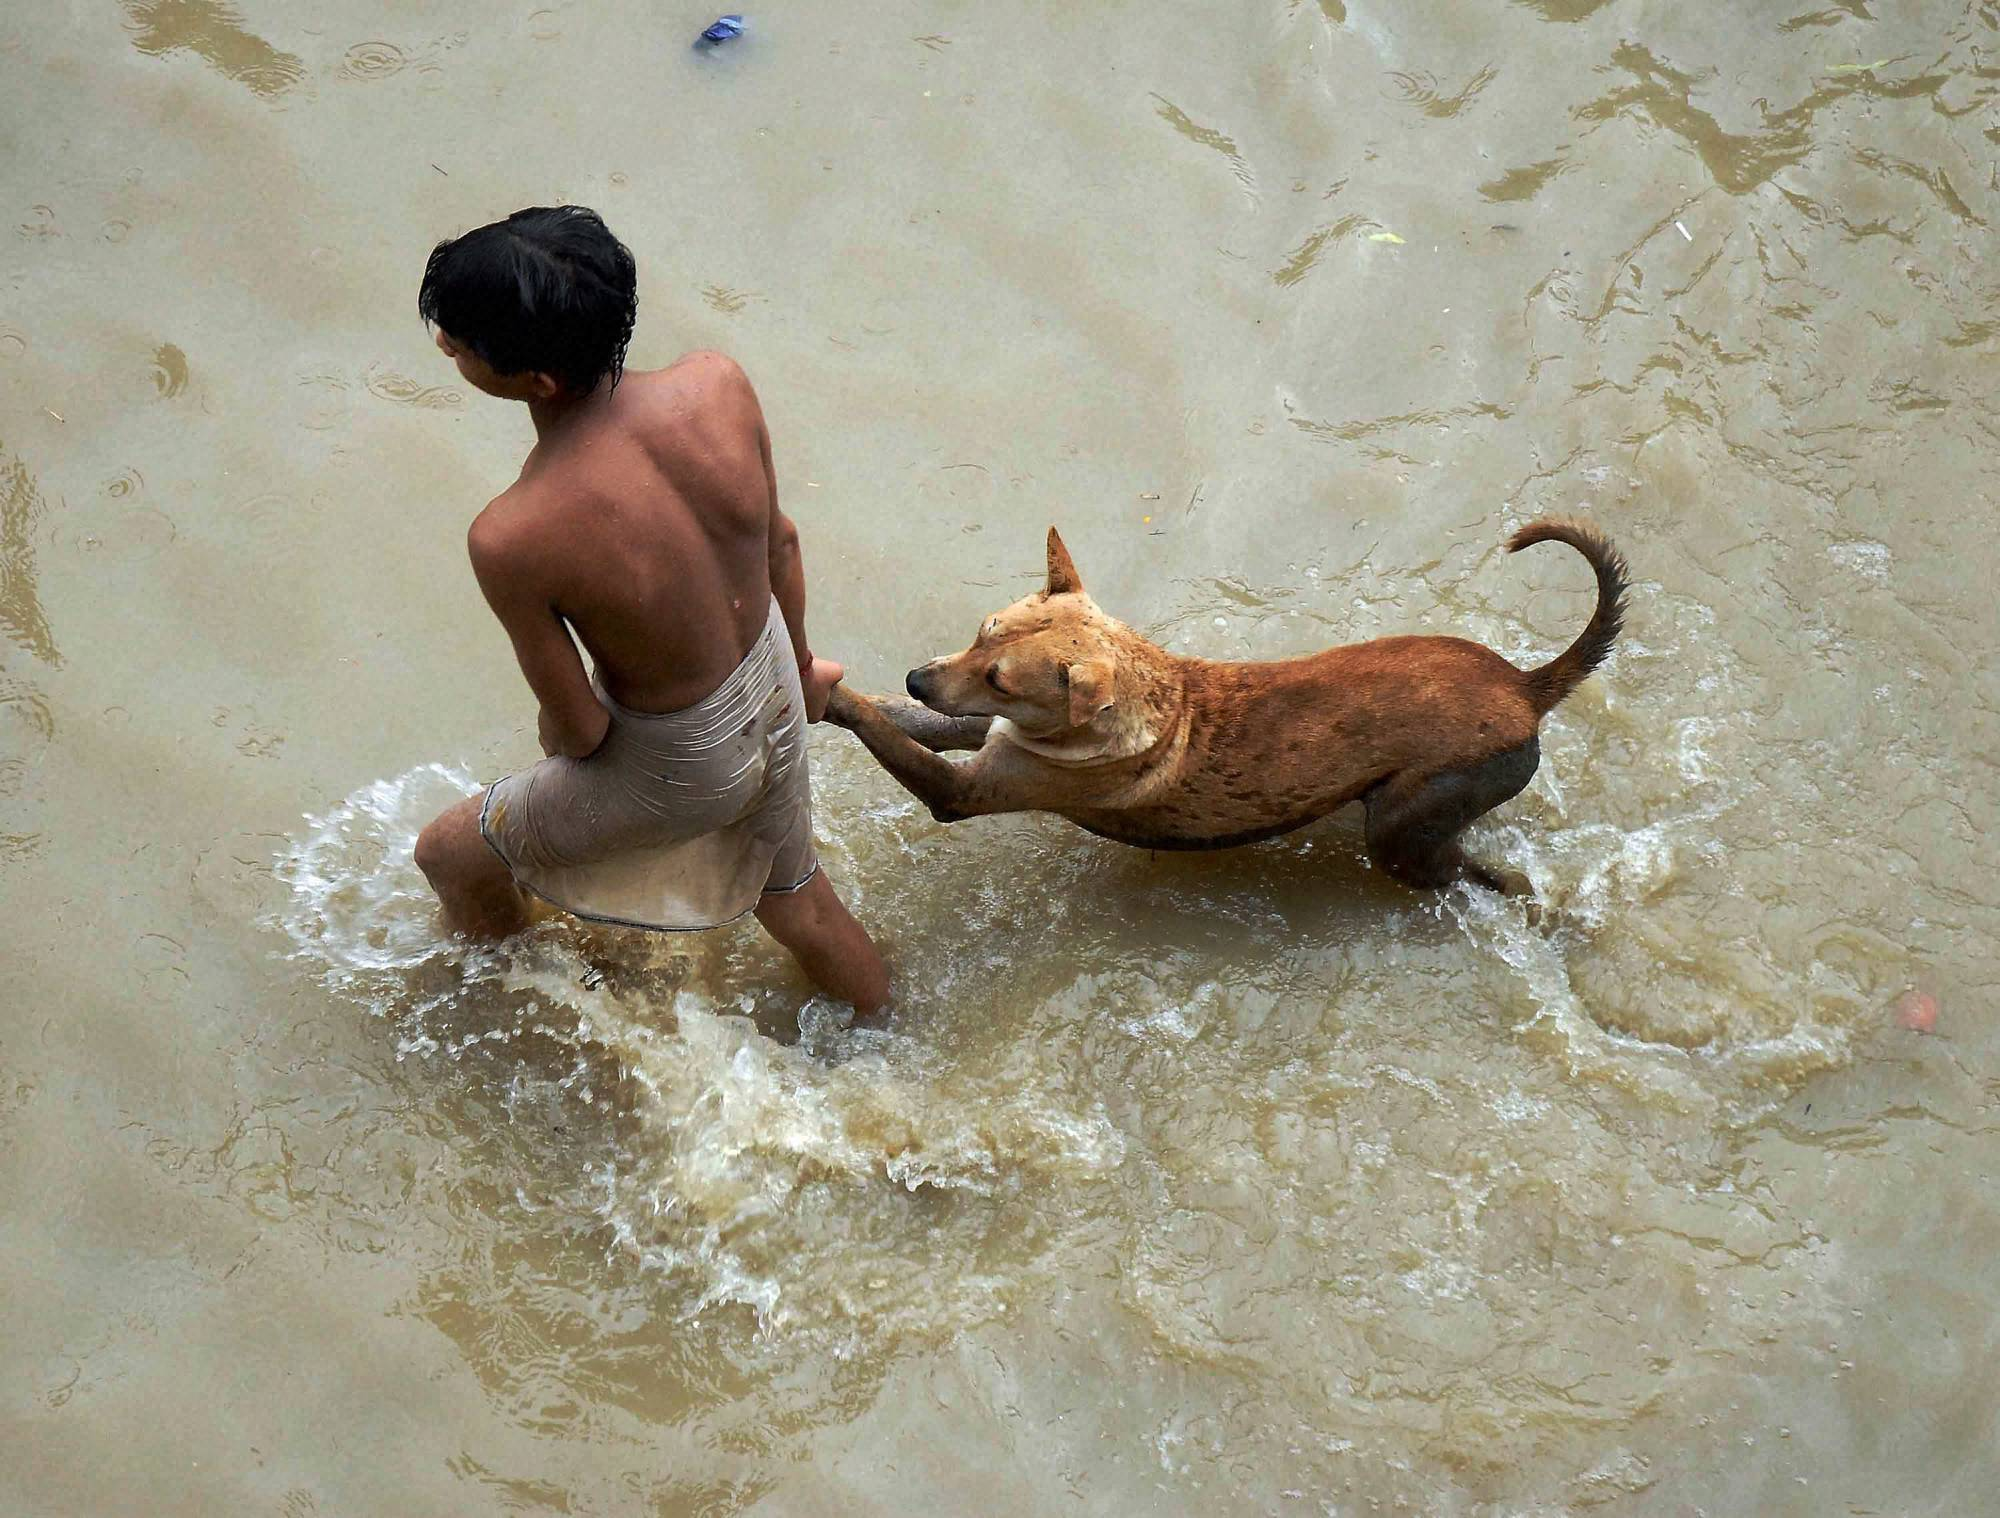 boy, plays, street, dog, road, flooded, River, Ganga, Kalighat Kali, temple, Kolkata